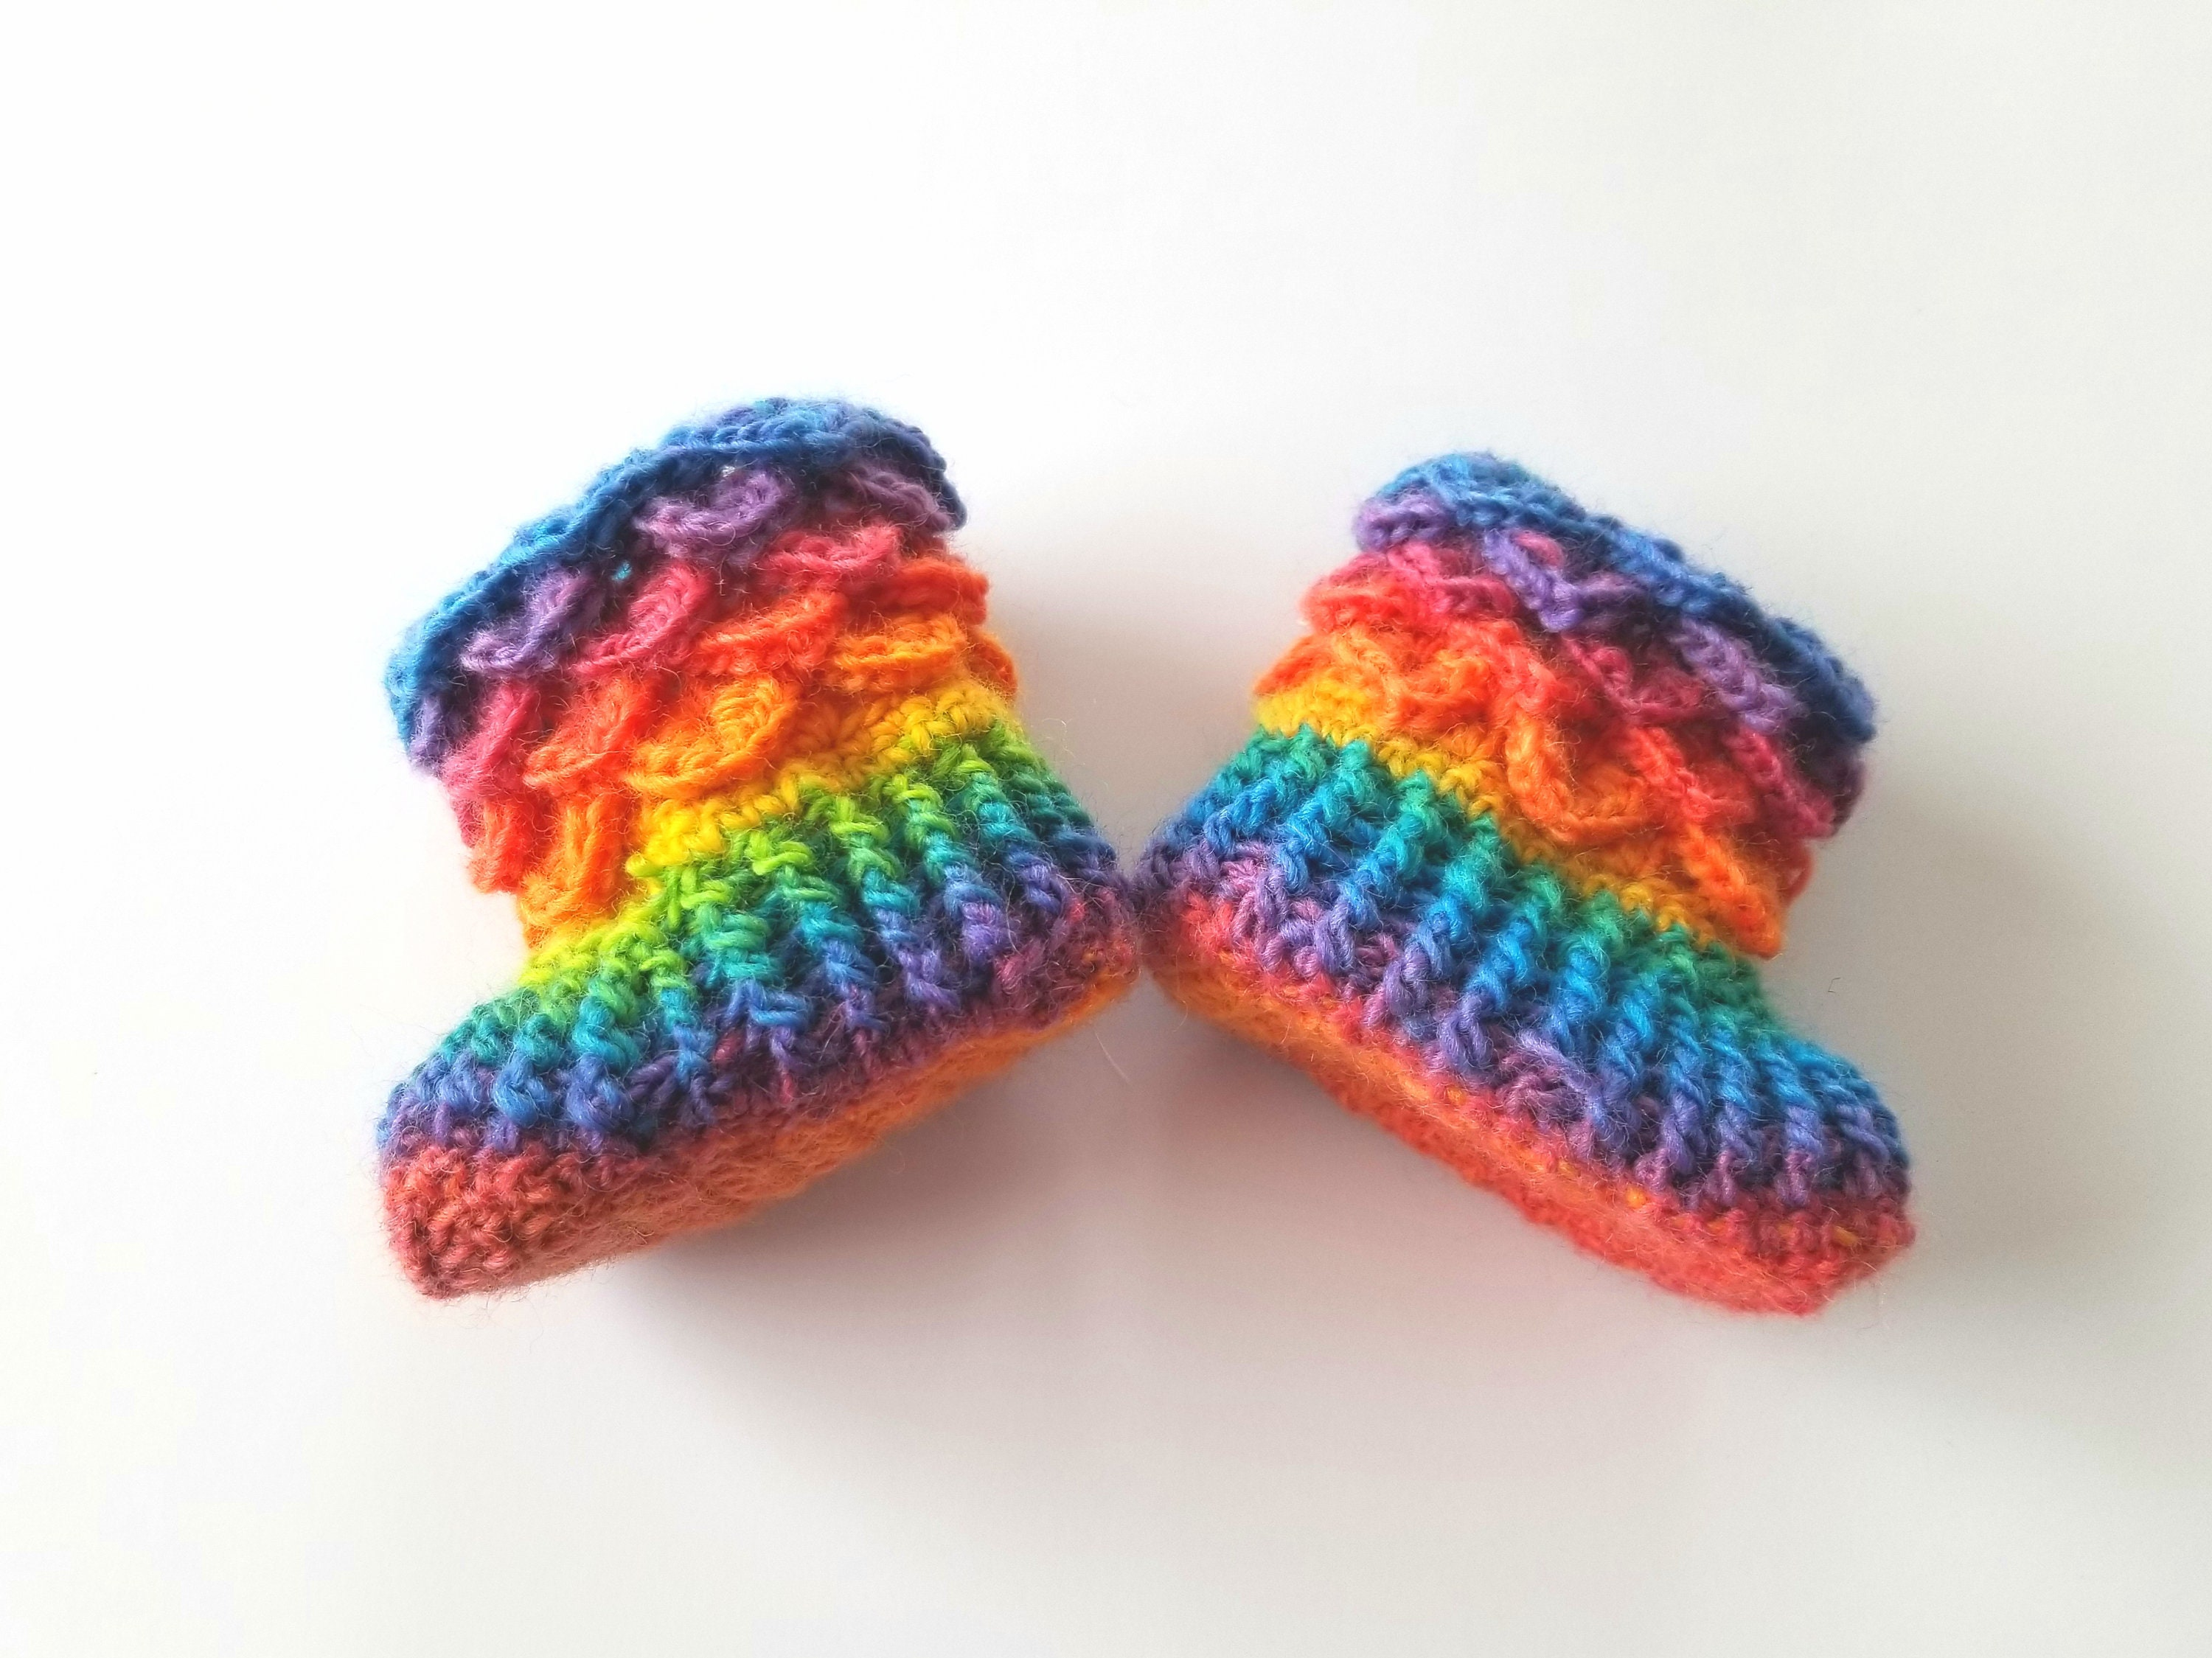 Crochet Baby Booties For Sale Loafers 0 6 Month Or 6 12 Etsy